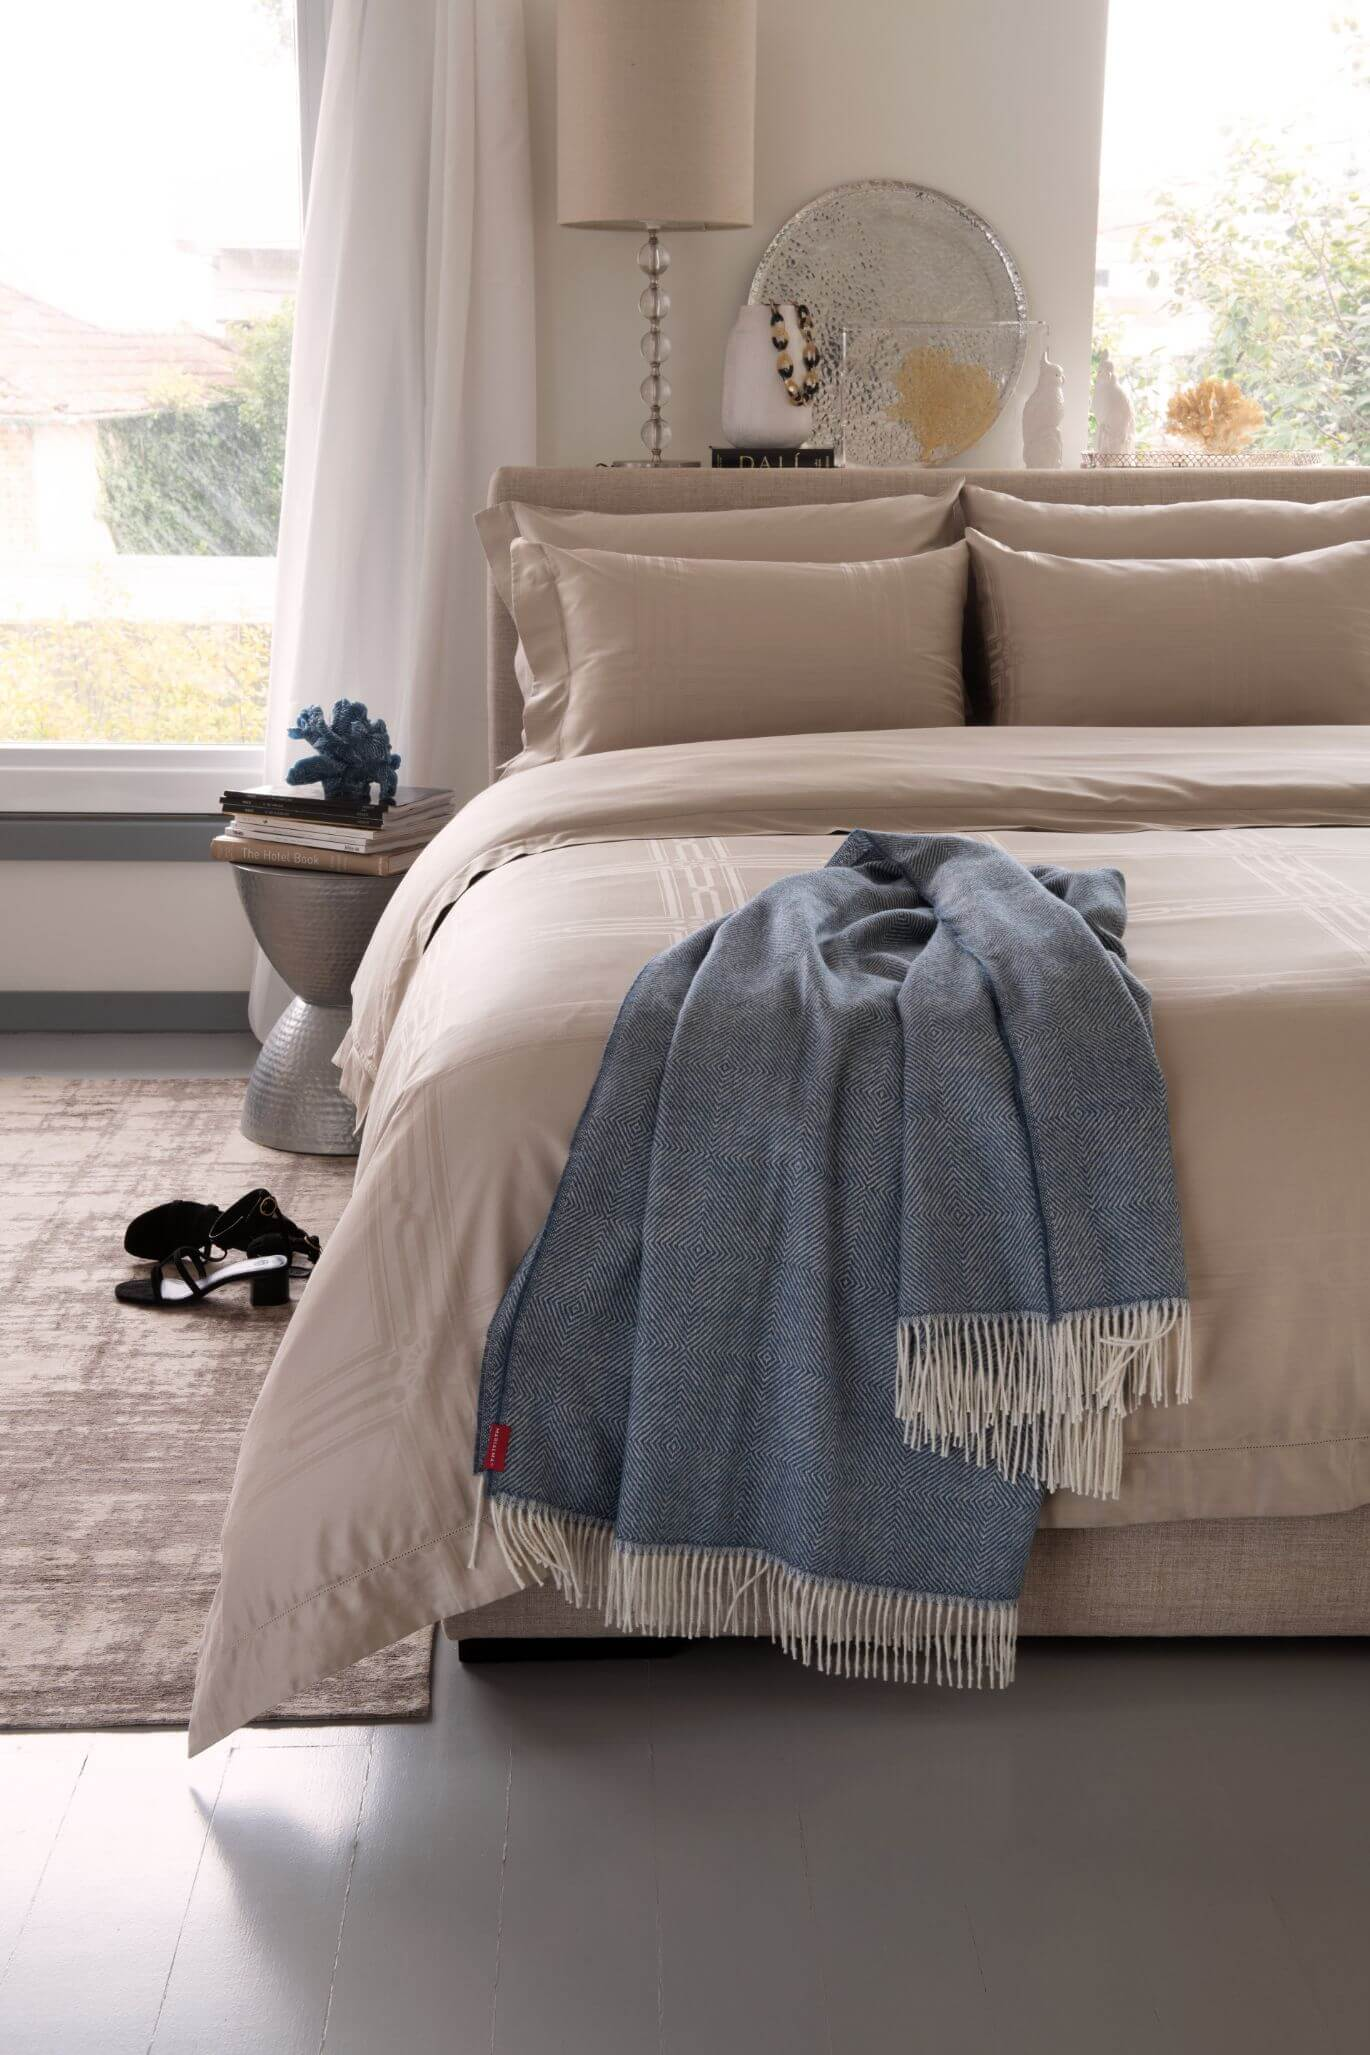 Marialma's Classic Blue Alpaca Throw in bedroom with Marialma's Light Taupe Sheets